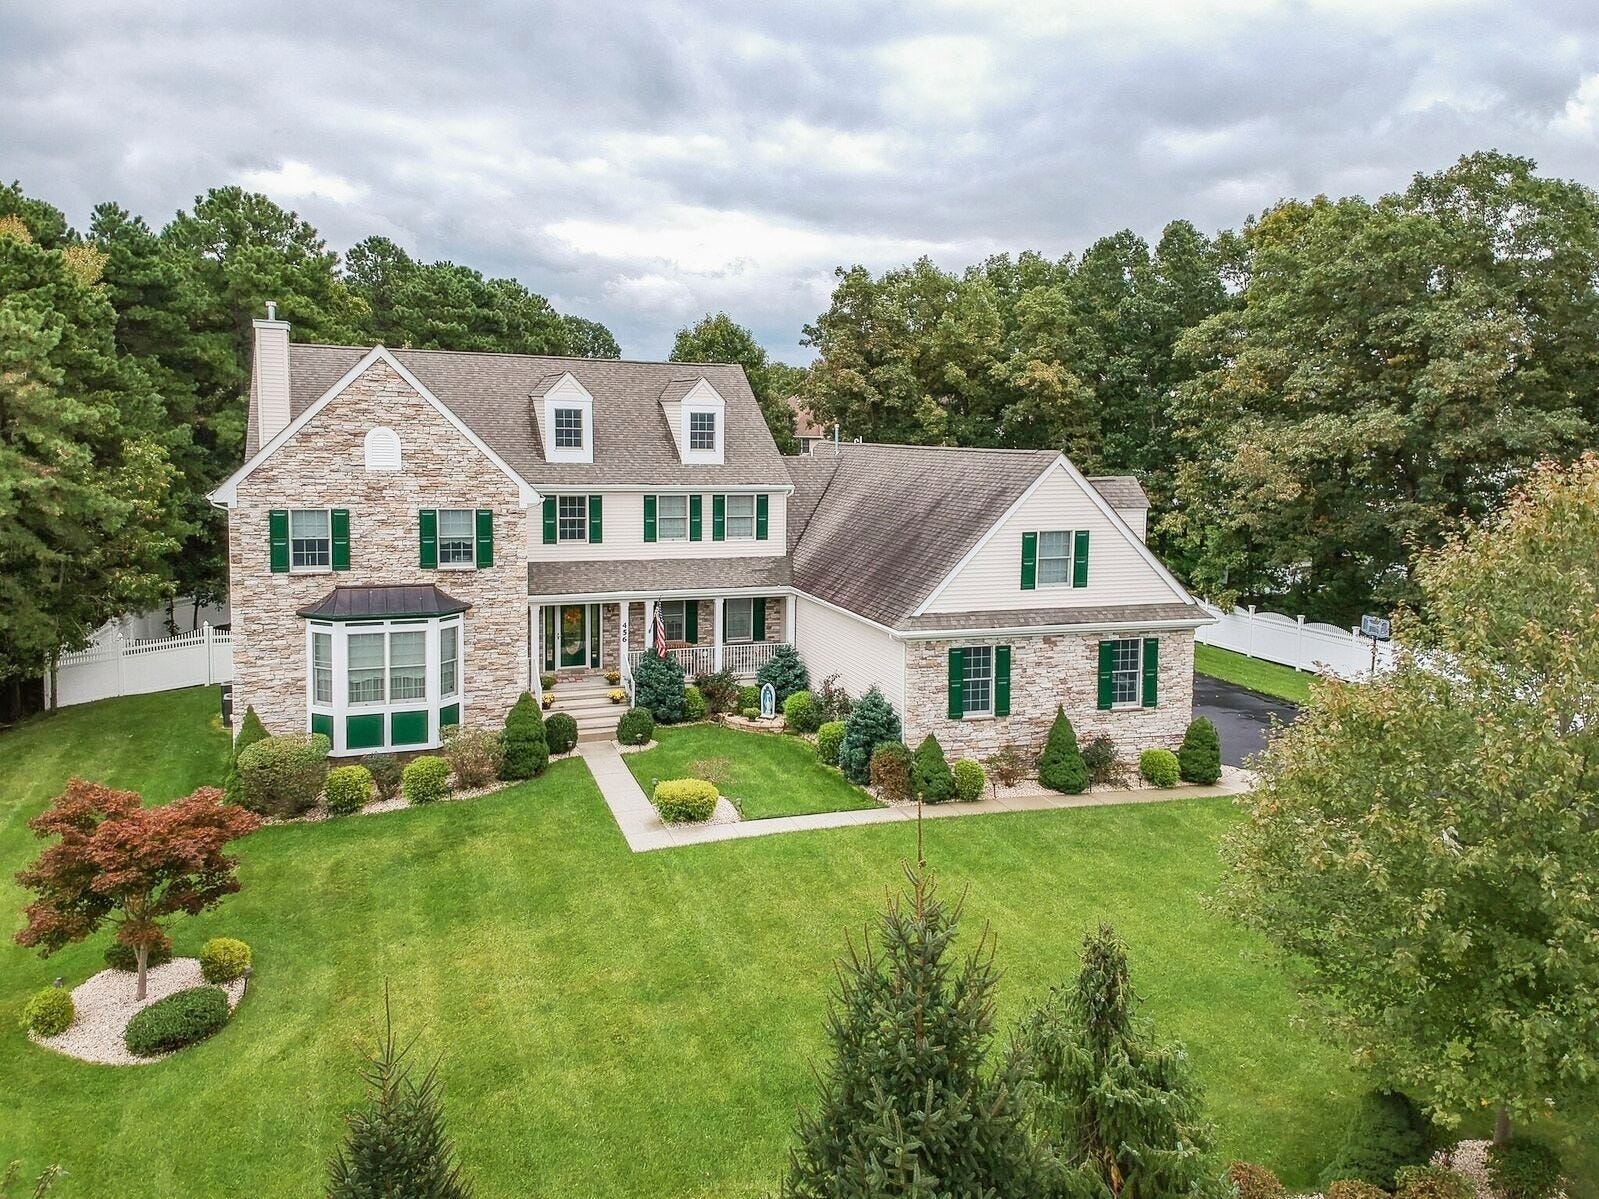 This five-bedroom home at 456 Spotswood Gravel Hill Road in Monroe will be open to the public from 1 to 4 p.m. Sunday, Nov. 11.